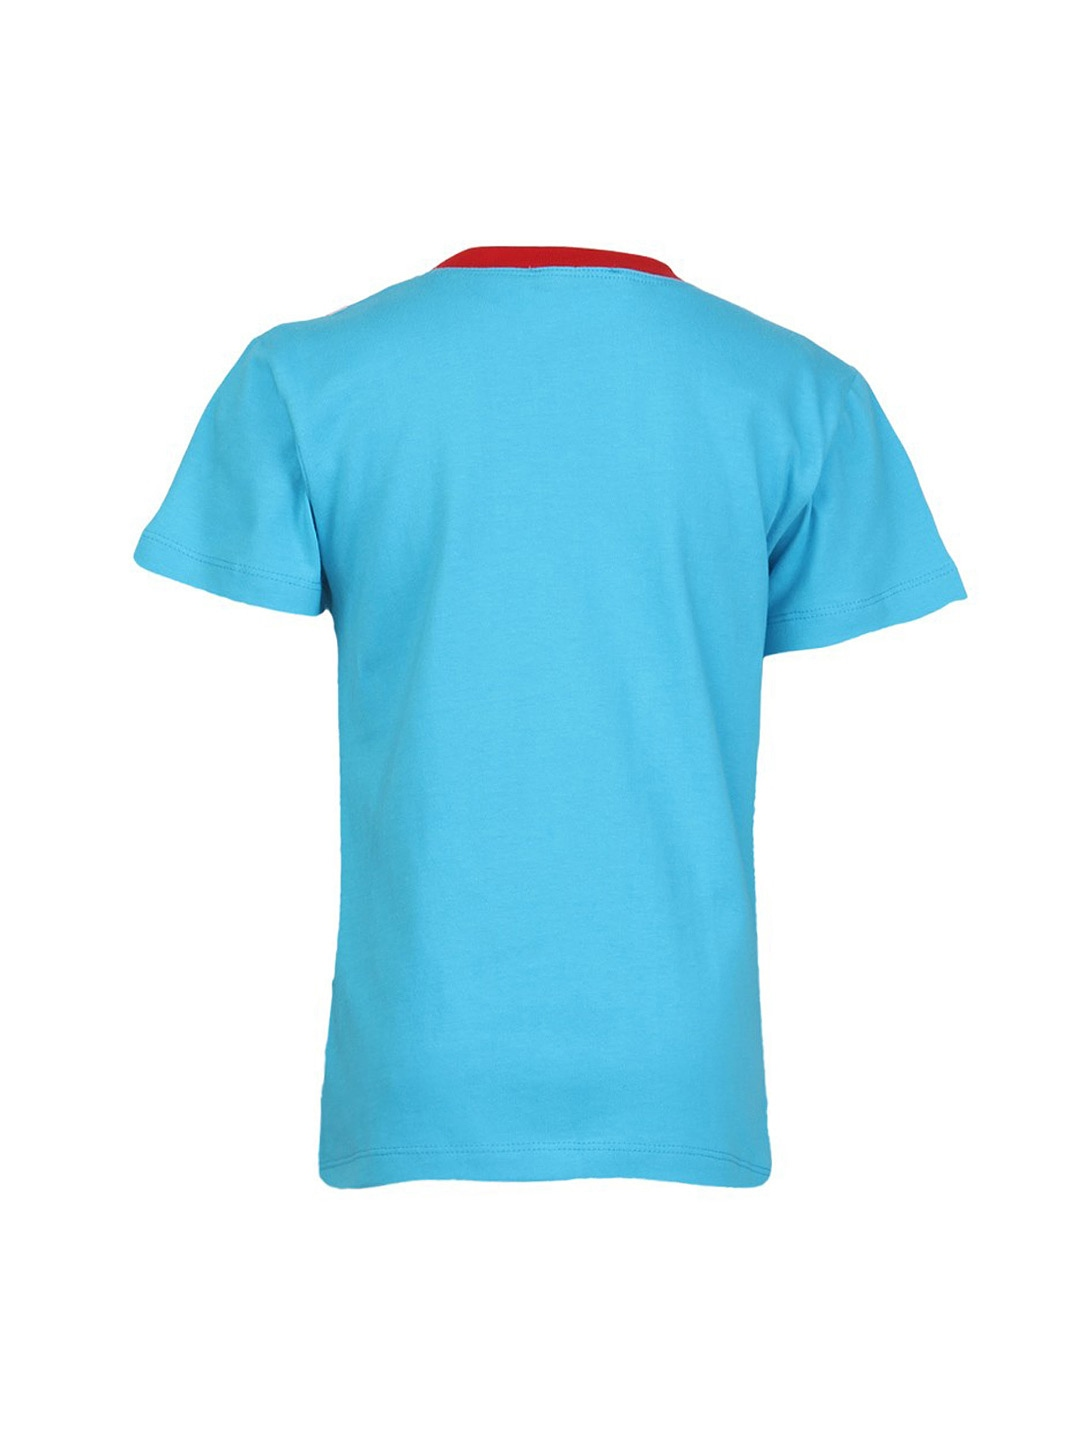 Myntra cool quotient boys turquoise blue printed t shirt for Boys printed t shirts